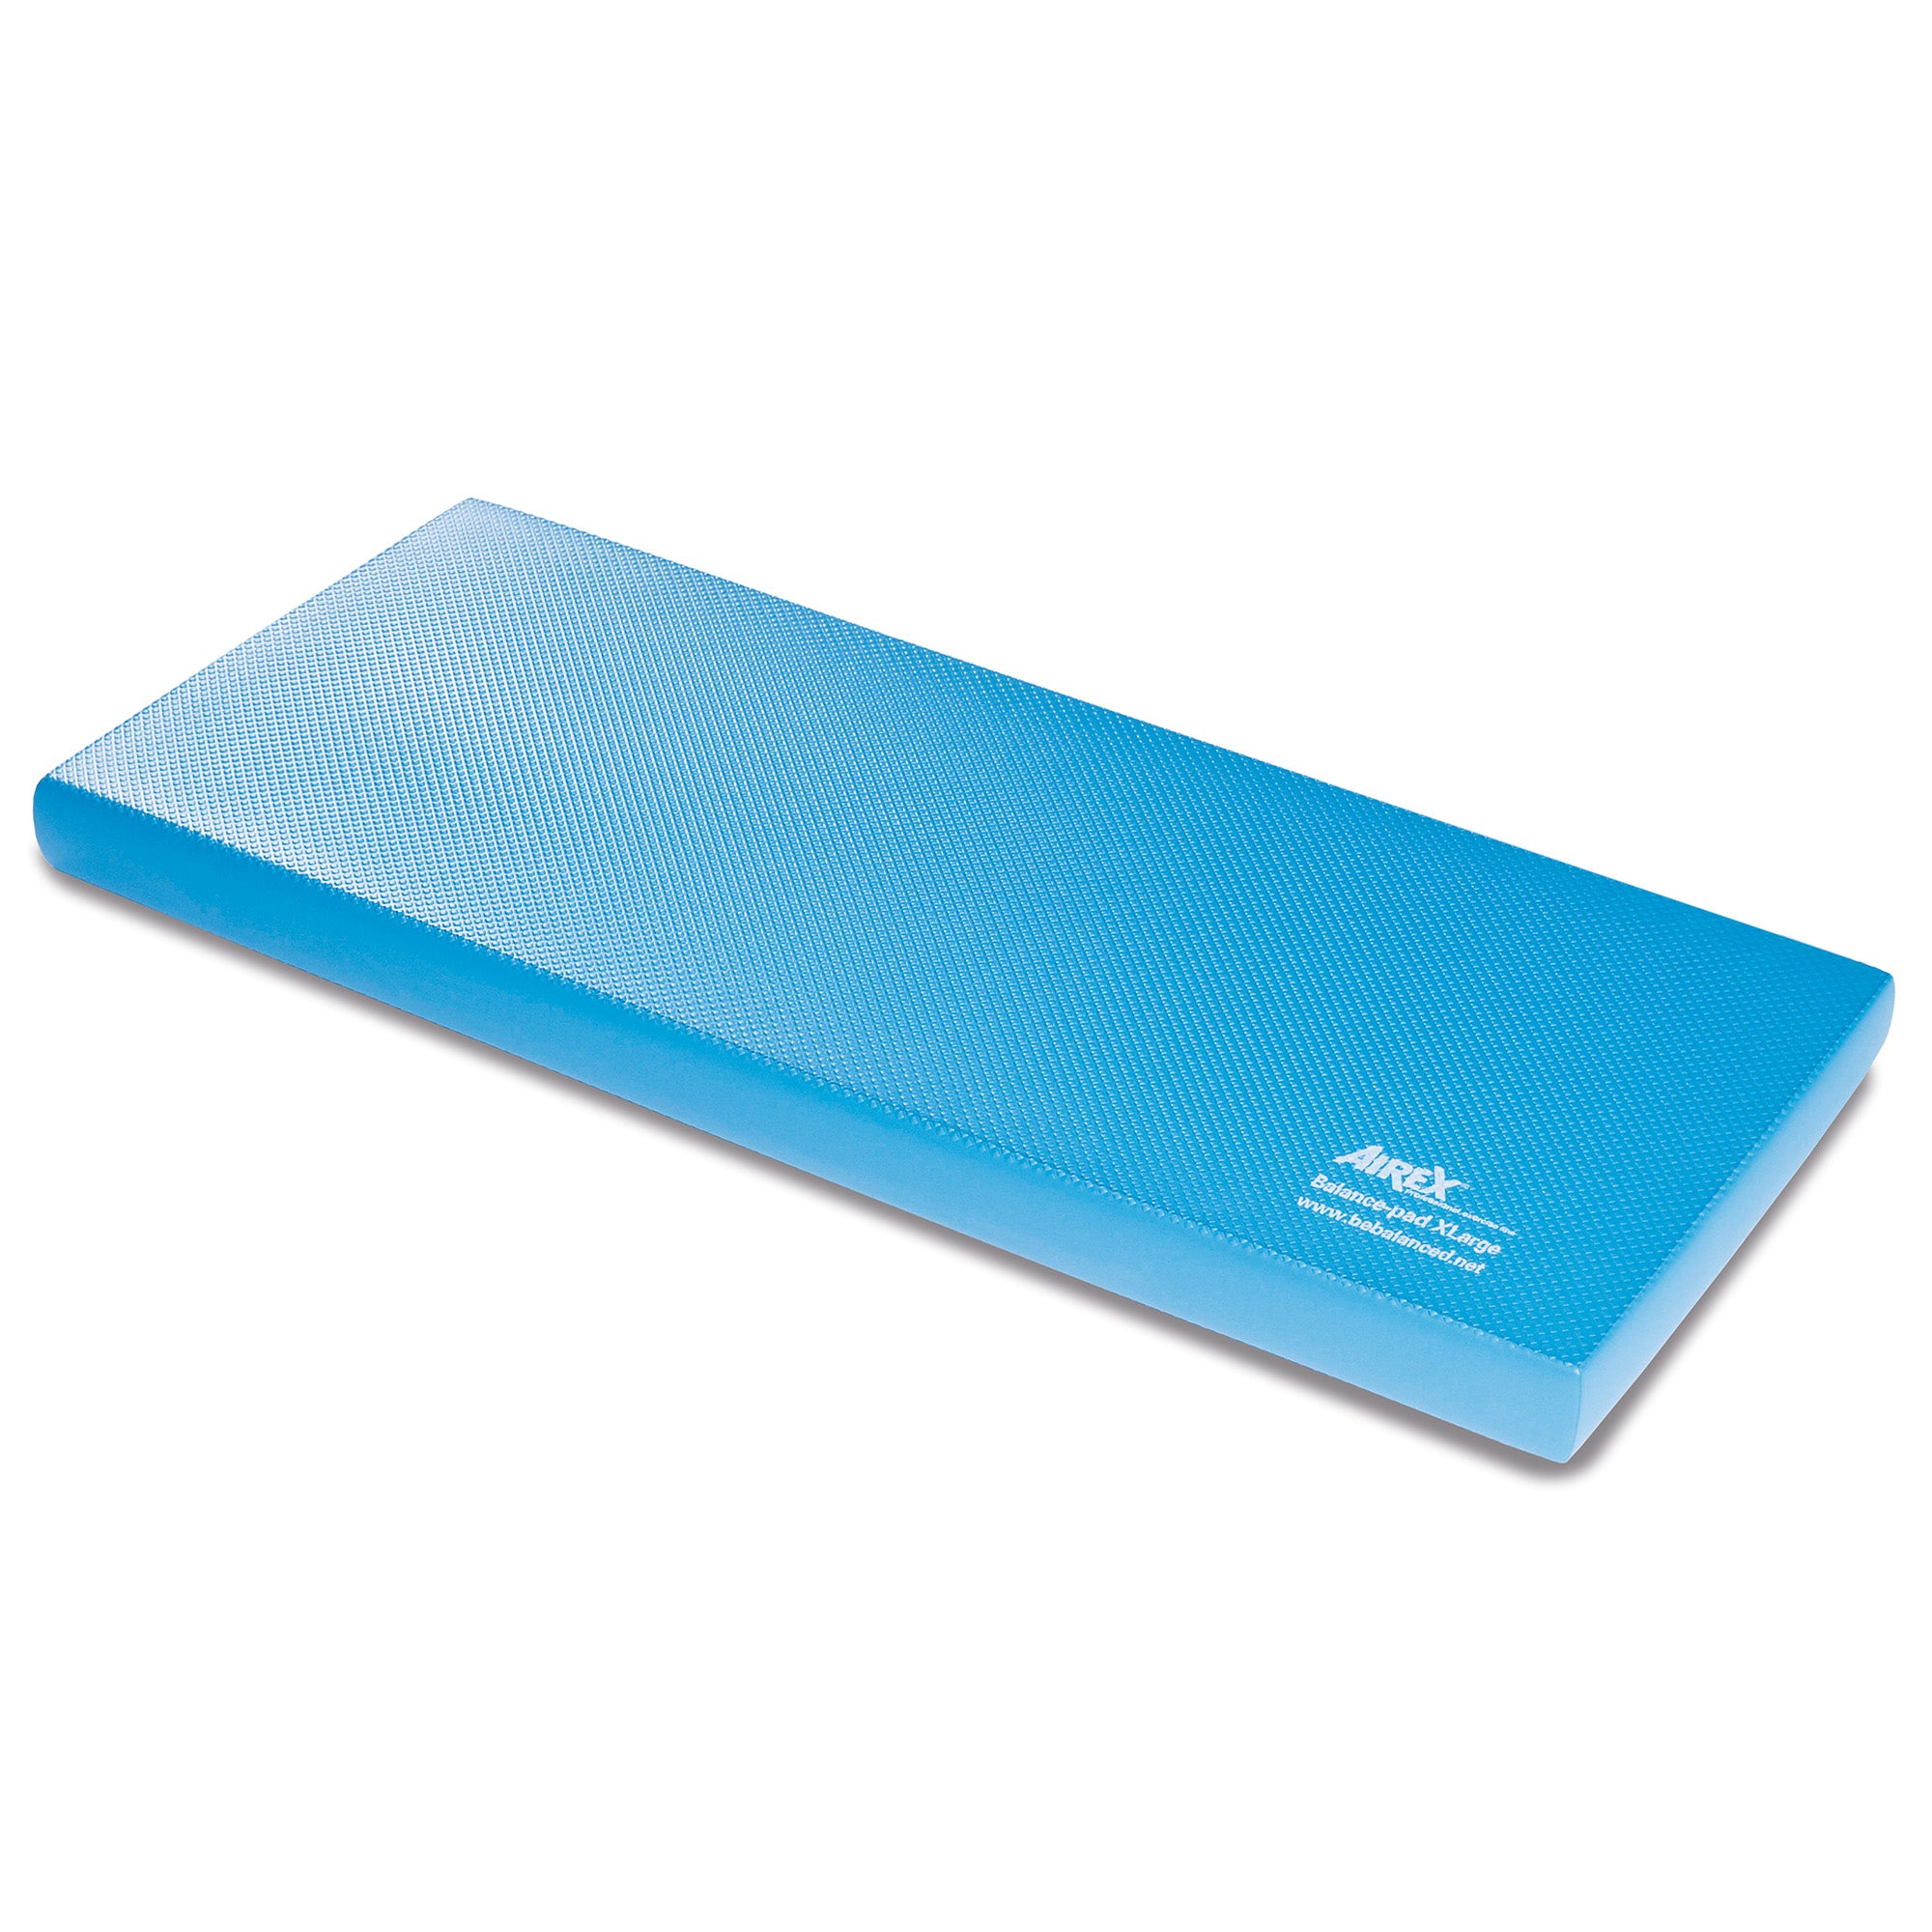 "The Airex® Balance Pad XL is twice as large as other balance pads, offering more surface area to increase your exercise options. Great for balance, mobility, standing stability and motor-skill training, this balance pad will improve joint stability through moderate instability. Includes a free downloadable exercise guide. Airex® Balance Pad XL Features: Twice as large as other balance pads More surface area for more exercise options Improve joint stability Includes downloadable exercise guide Dimensions: Approximately 38.6""L x 16.1""W x 2.4""H (6cm thick); 3.1 lbs. Care instructions: Spot treat with a soft brush and warm soapy water. Air dry. Do not use solvents, stain remover, hot steam or water. Best stored flat. To avoid pressure, do not store any objects on top of them. Avoid storing in direct sunlight for long periods of time for the mat will become brittle and stiff over time. Airex Balance Pad Exercise Guide"